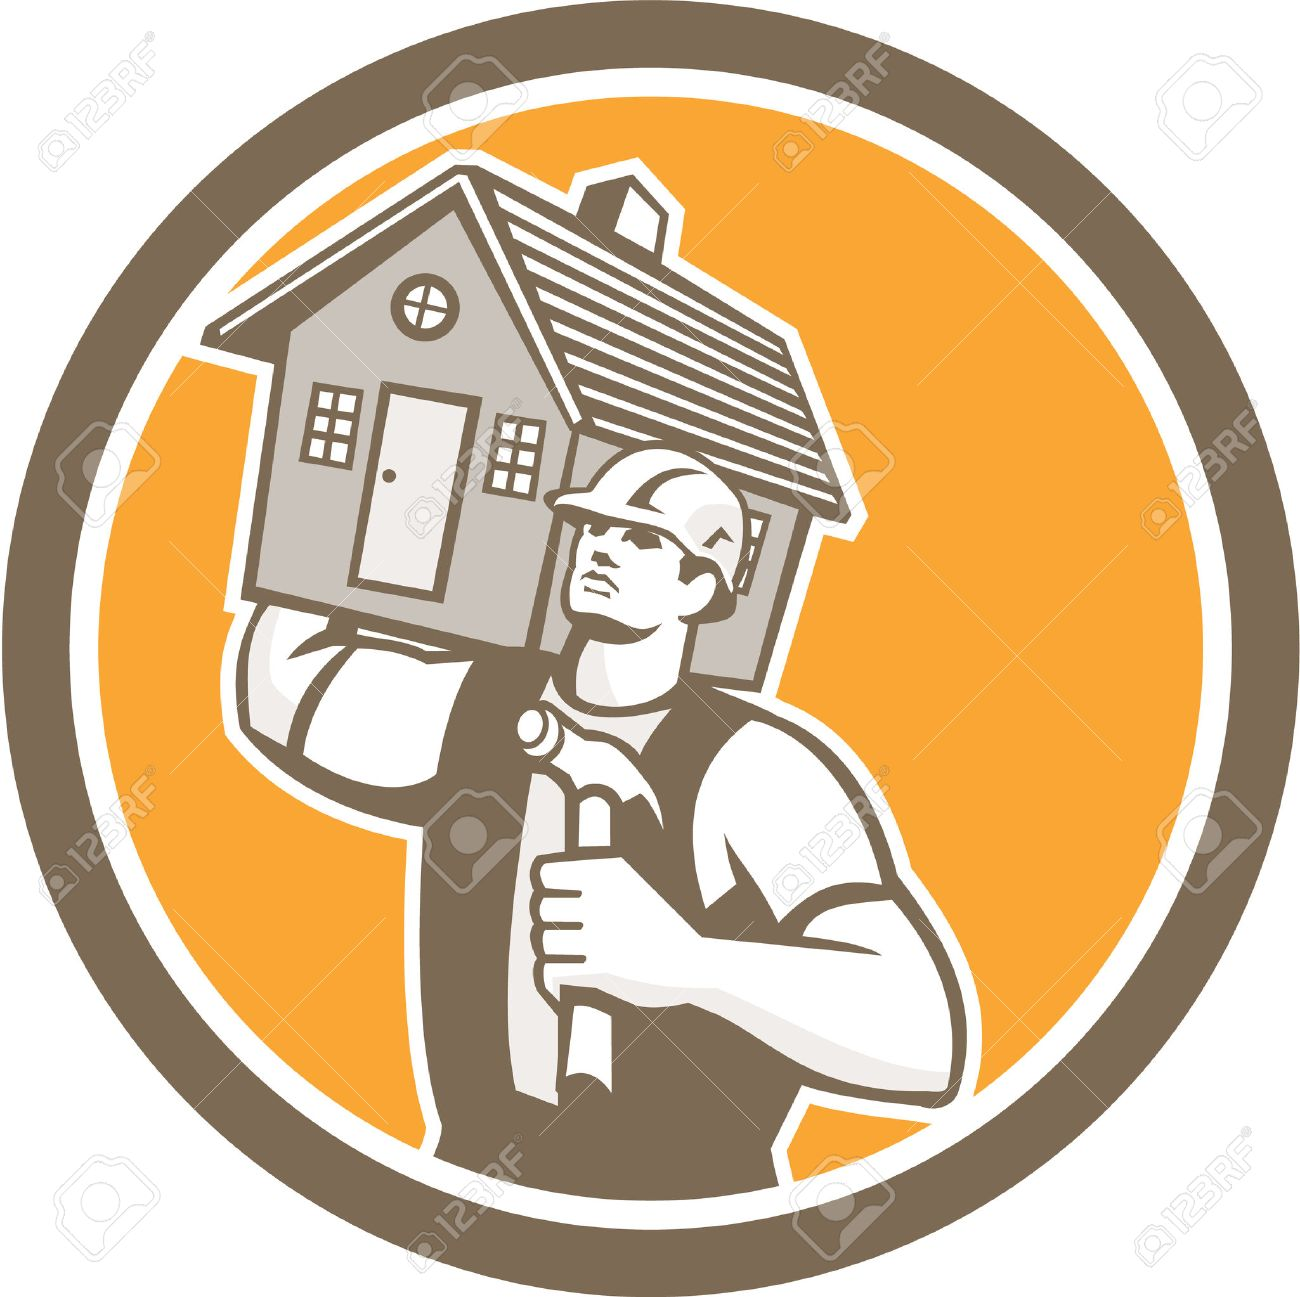 Illustration of a carpenter builder holding hammer and carrying house on shoulder set inside circle on isolated background done in retro style. Stock Vector - 30392734